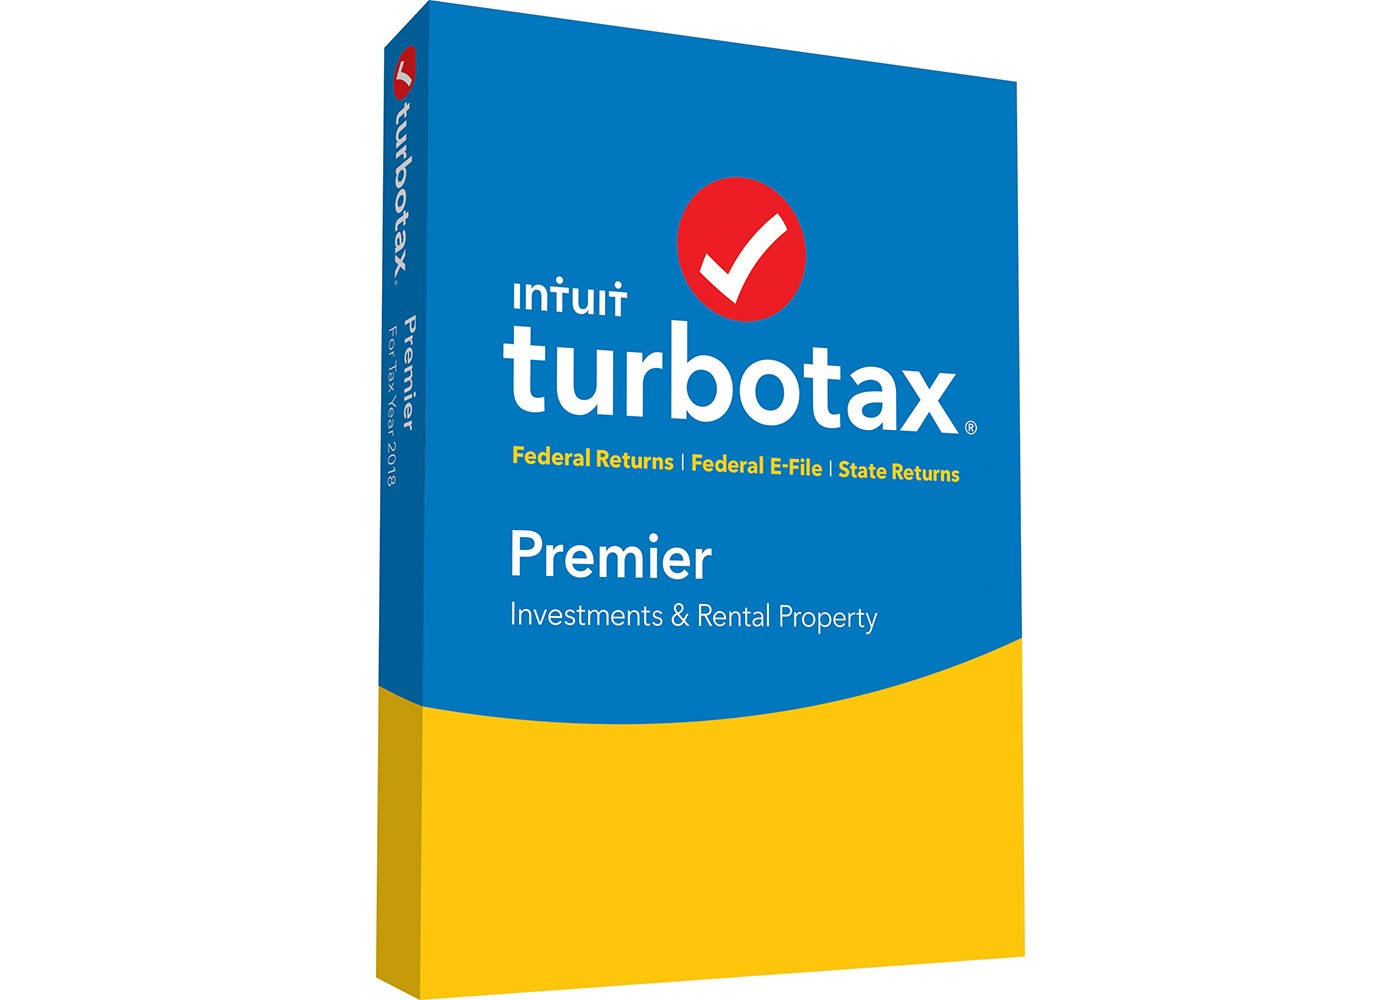 Intuit Turbotax Premier Federal + State 2018 - image 1 of 1